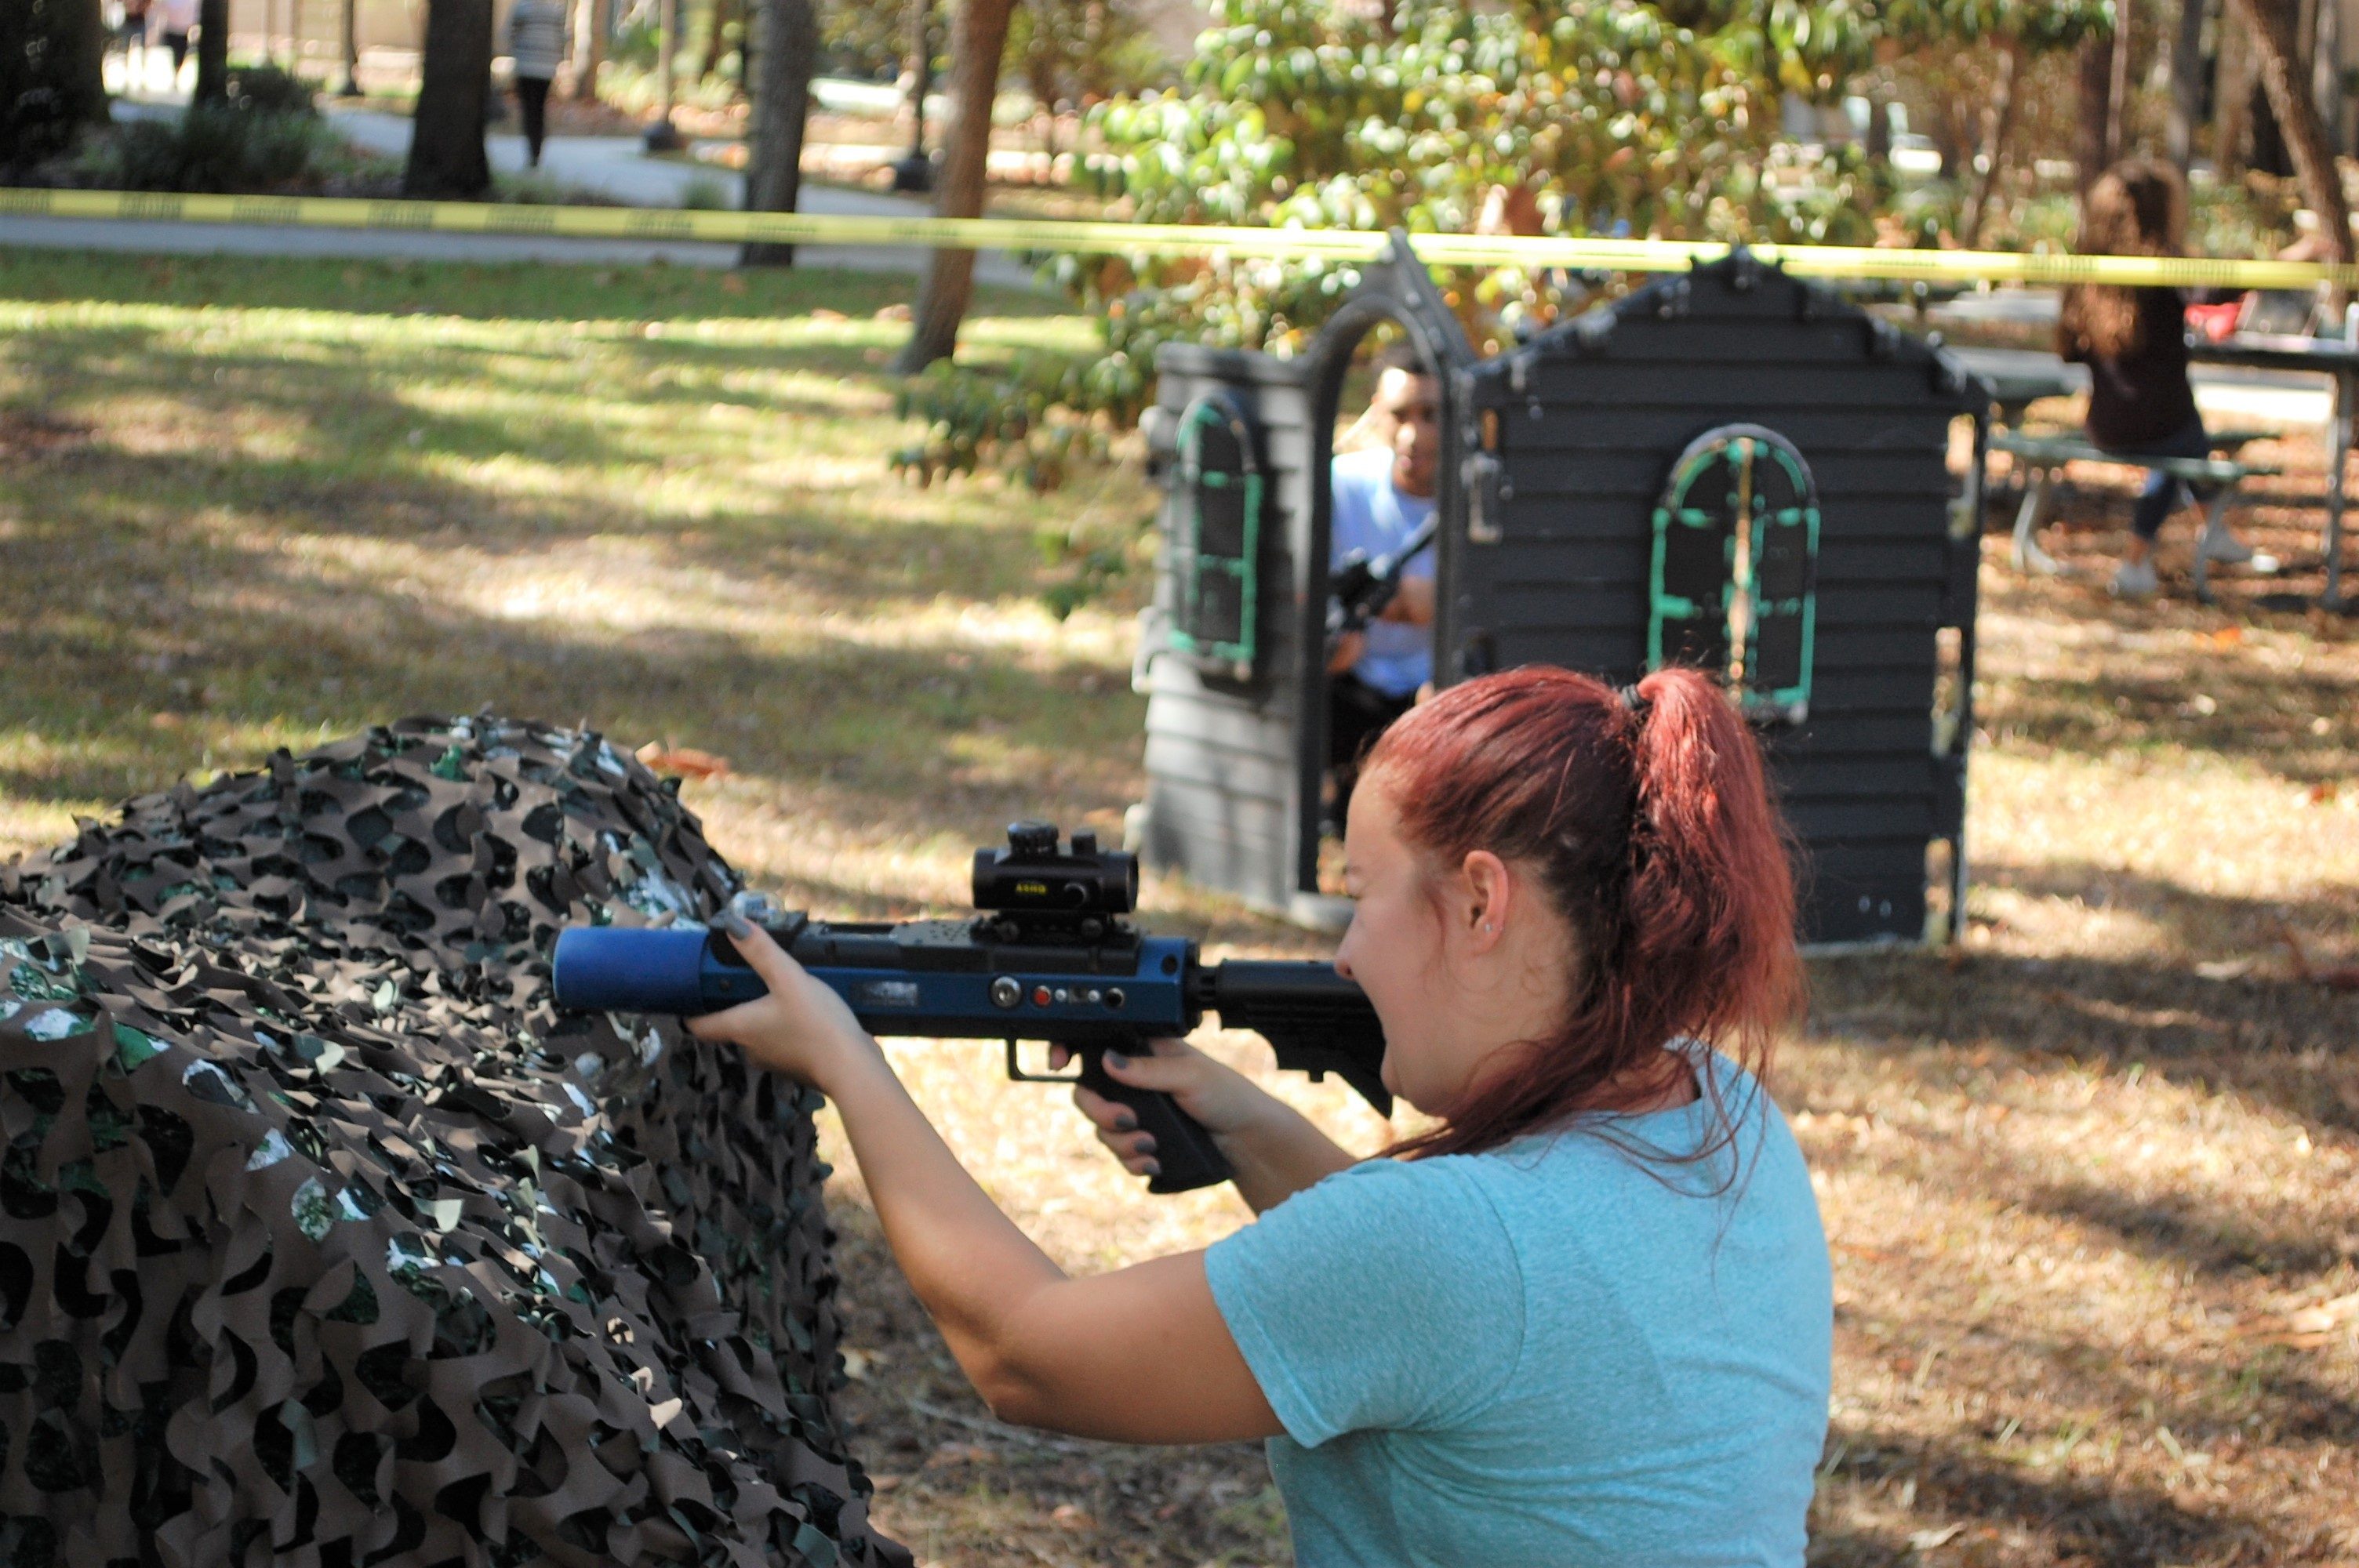 College Events in Florida - Stealth Mobile Laser Tag (50)